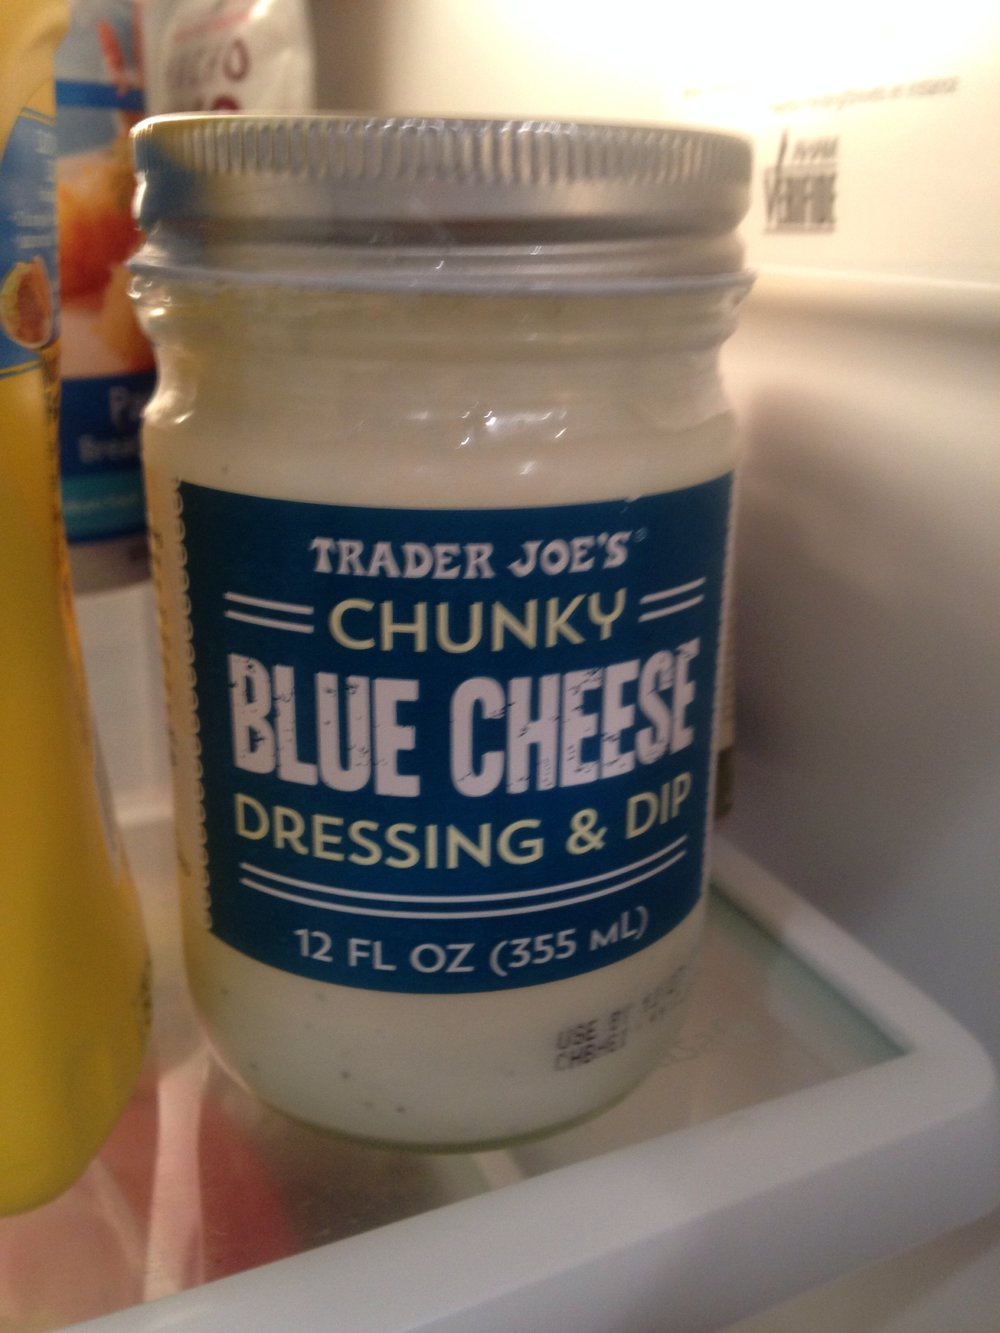 Jar of Trader Joe's Chunky Blue Cheese Dressing, relaxing in refrigerator, Satuday night, San Francisco, Dec. 3, 2016.